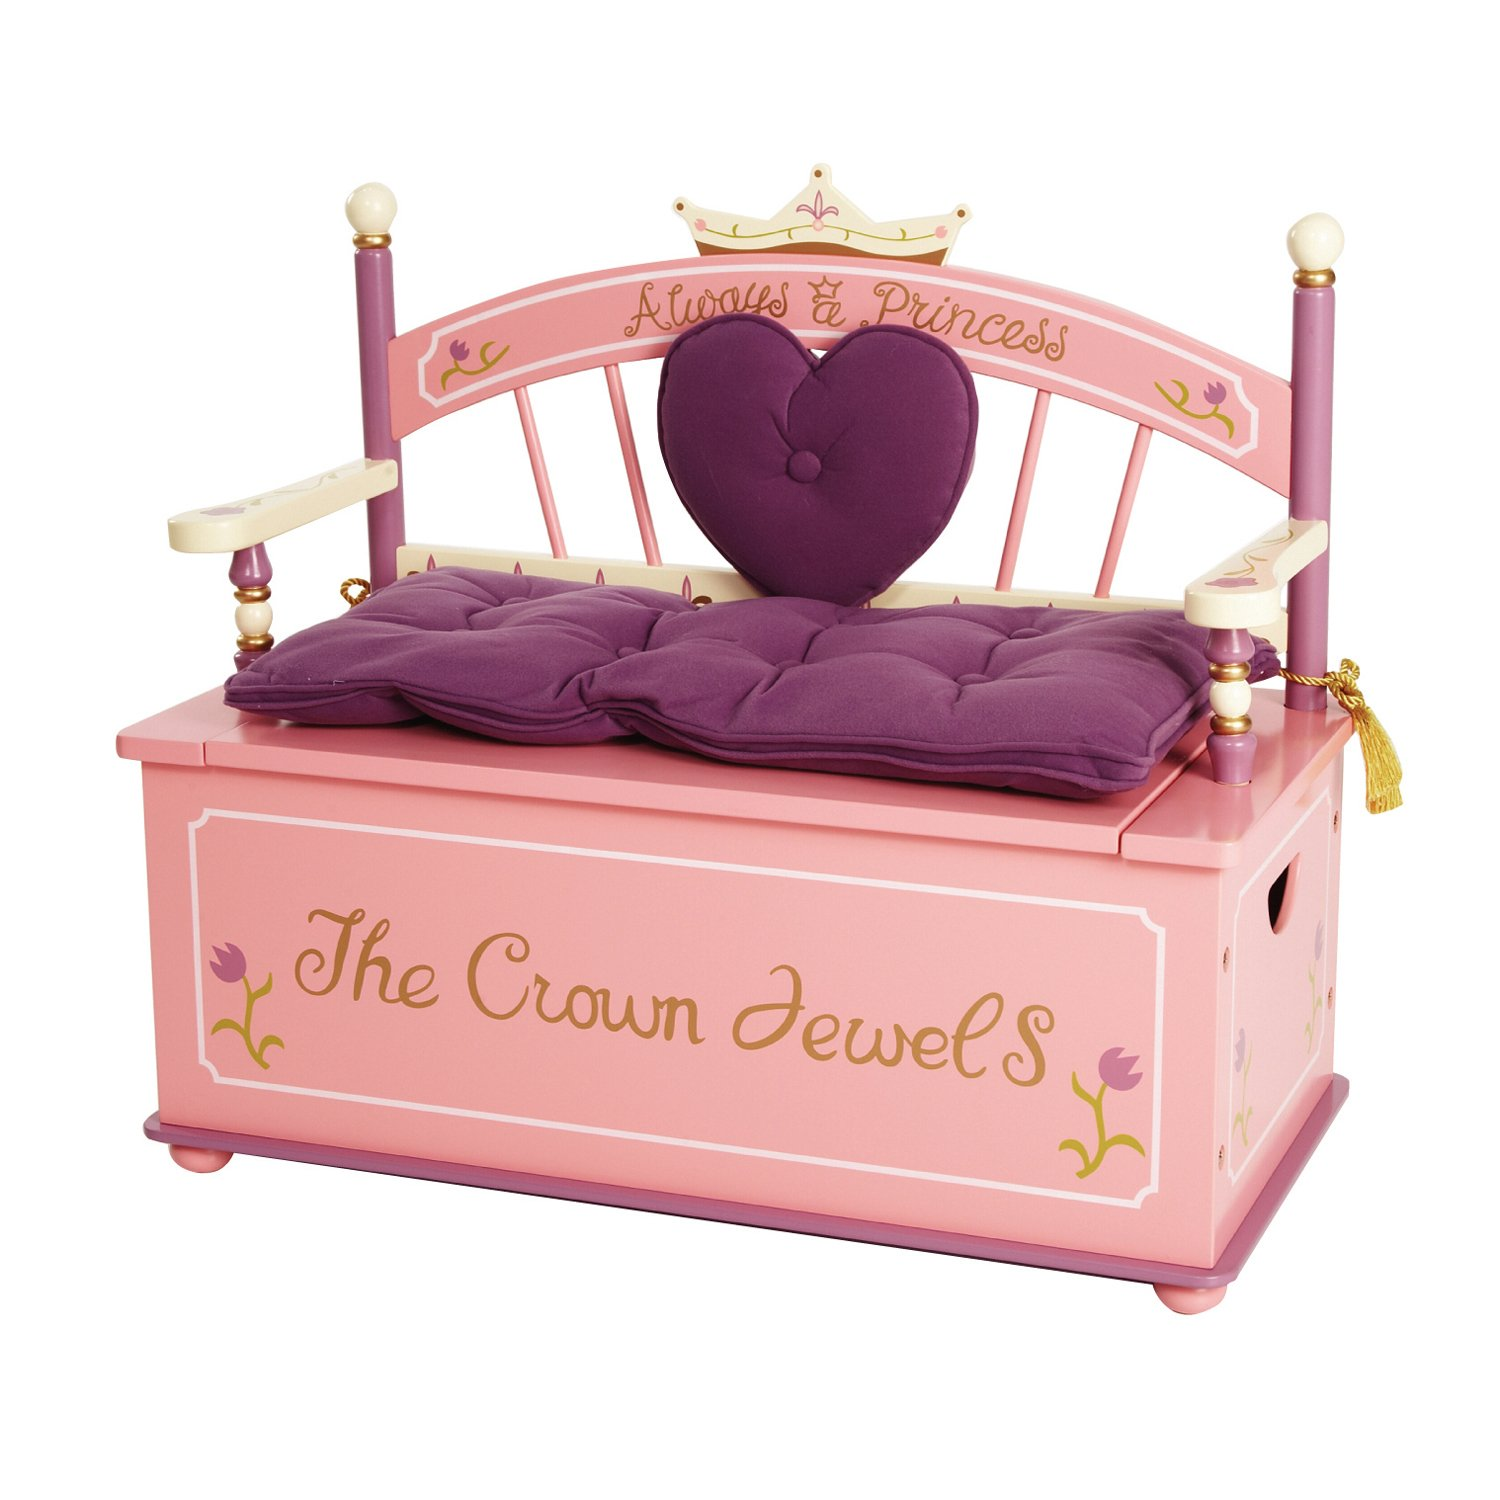 Wildkin Princess Bench Seat with Storage, Features Removable Plush Cushions, Two Side Handles, and Pinch-Proof Safety Hinge, Perfect for the Little Princess in Your Life – Pink